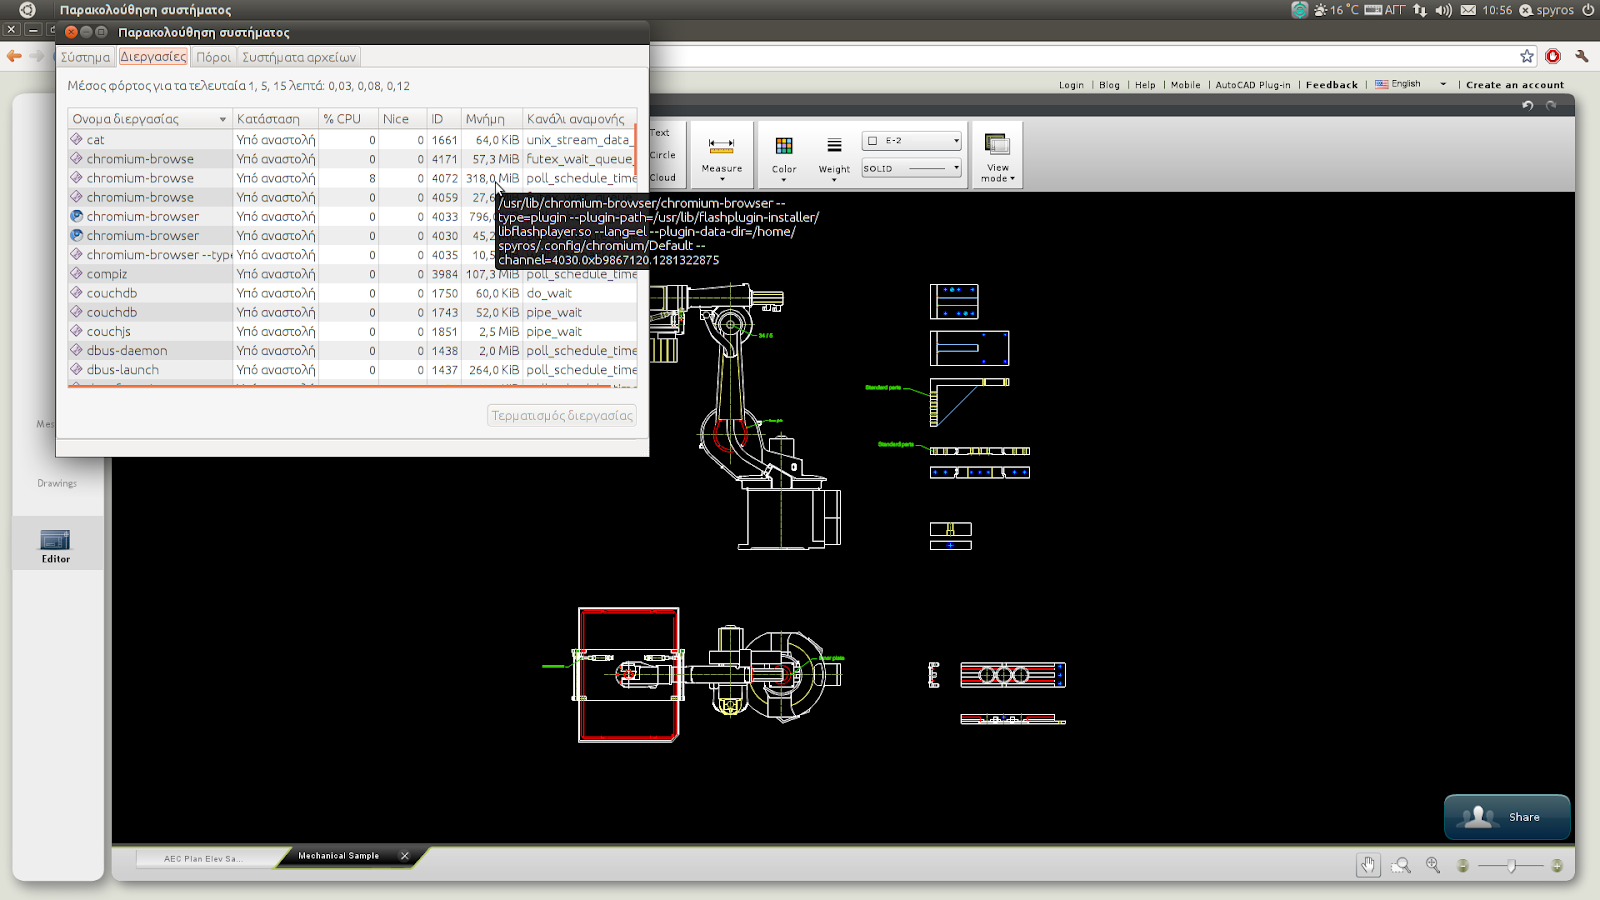 LibreCAD Review http://linuxaideddesign.blogspot.com/2011/04/why-i-will-not-use-autocad-ws.html